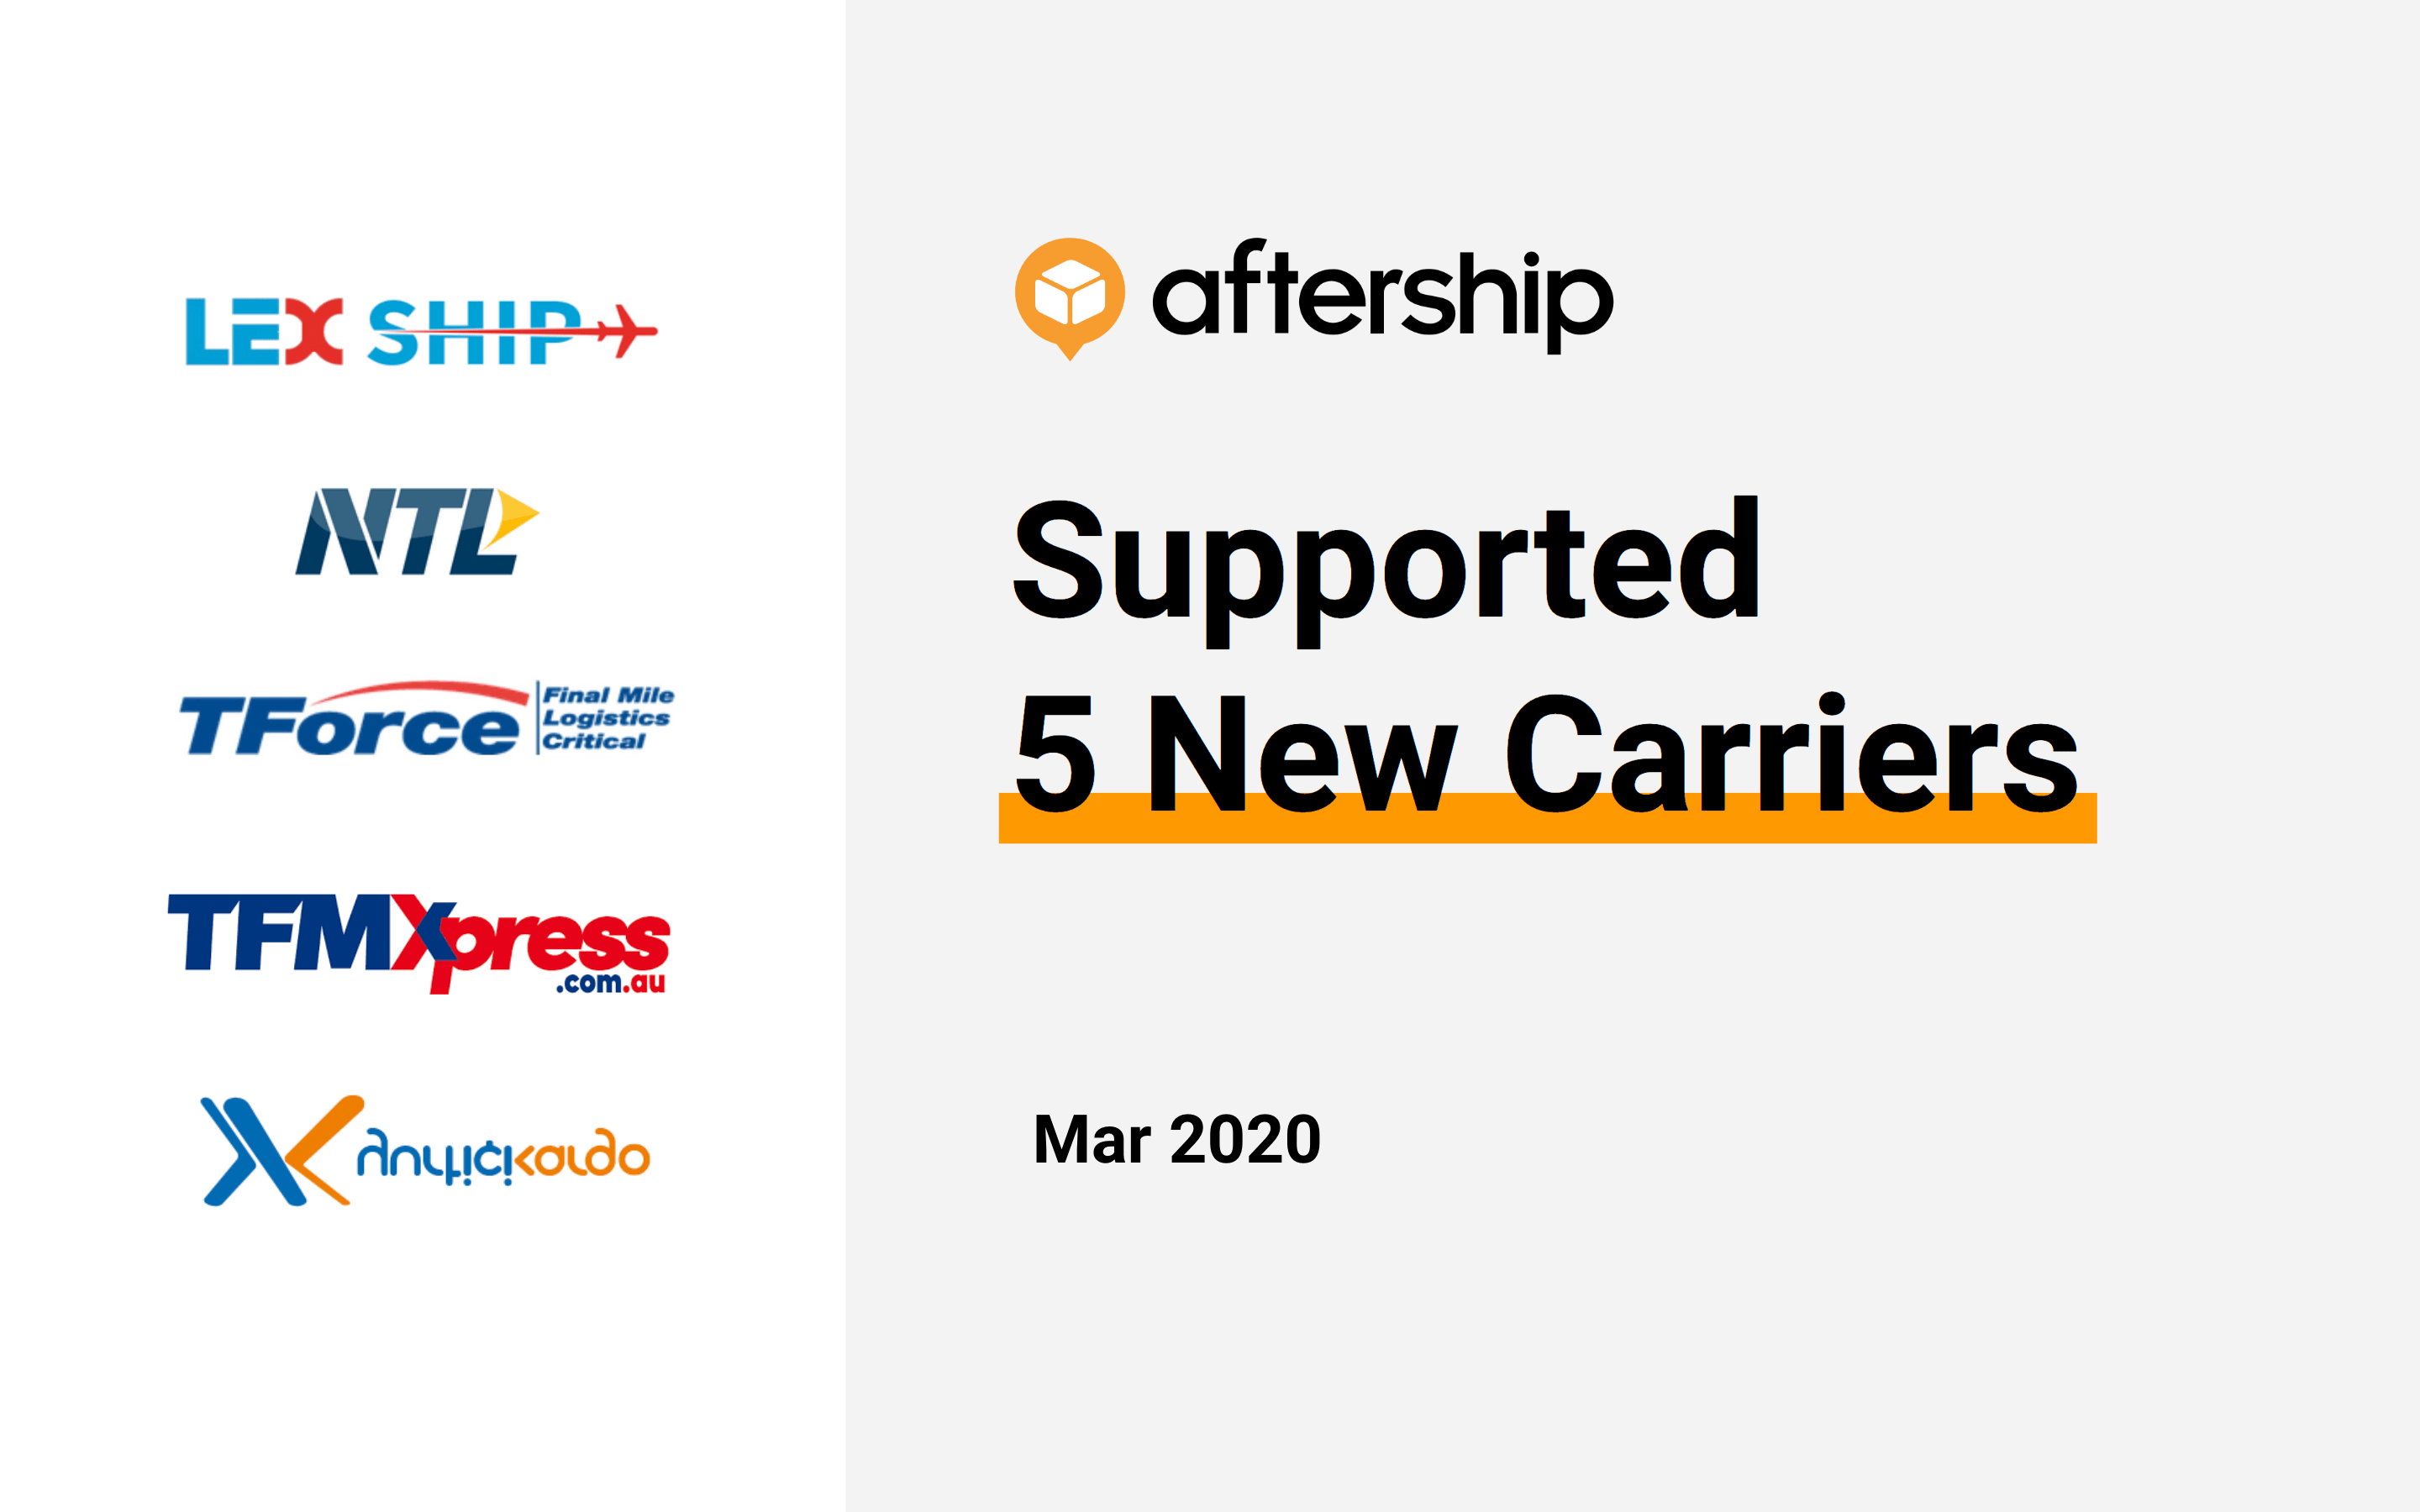 AfterShip added 5 new carriers this week (9 Mar 2020 to 15 Mar 2020)